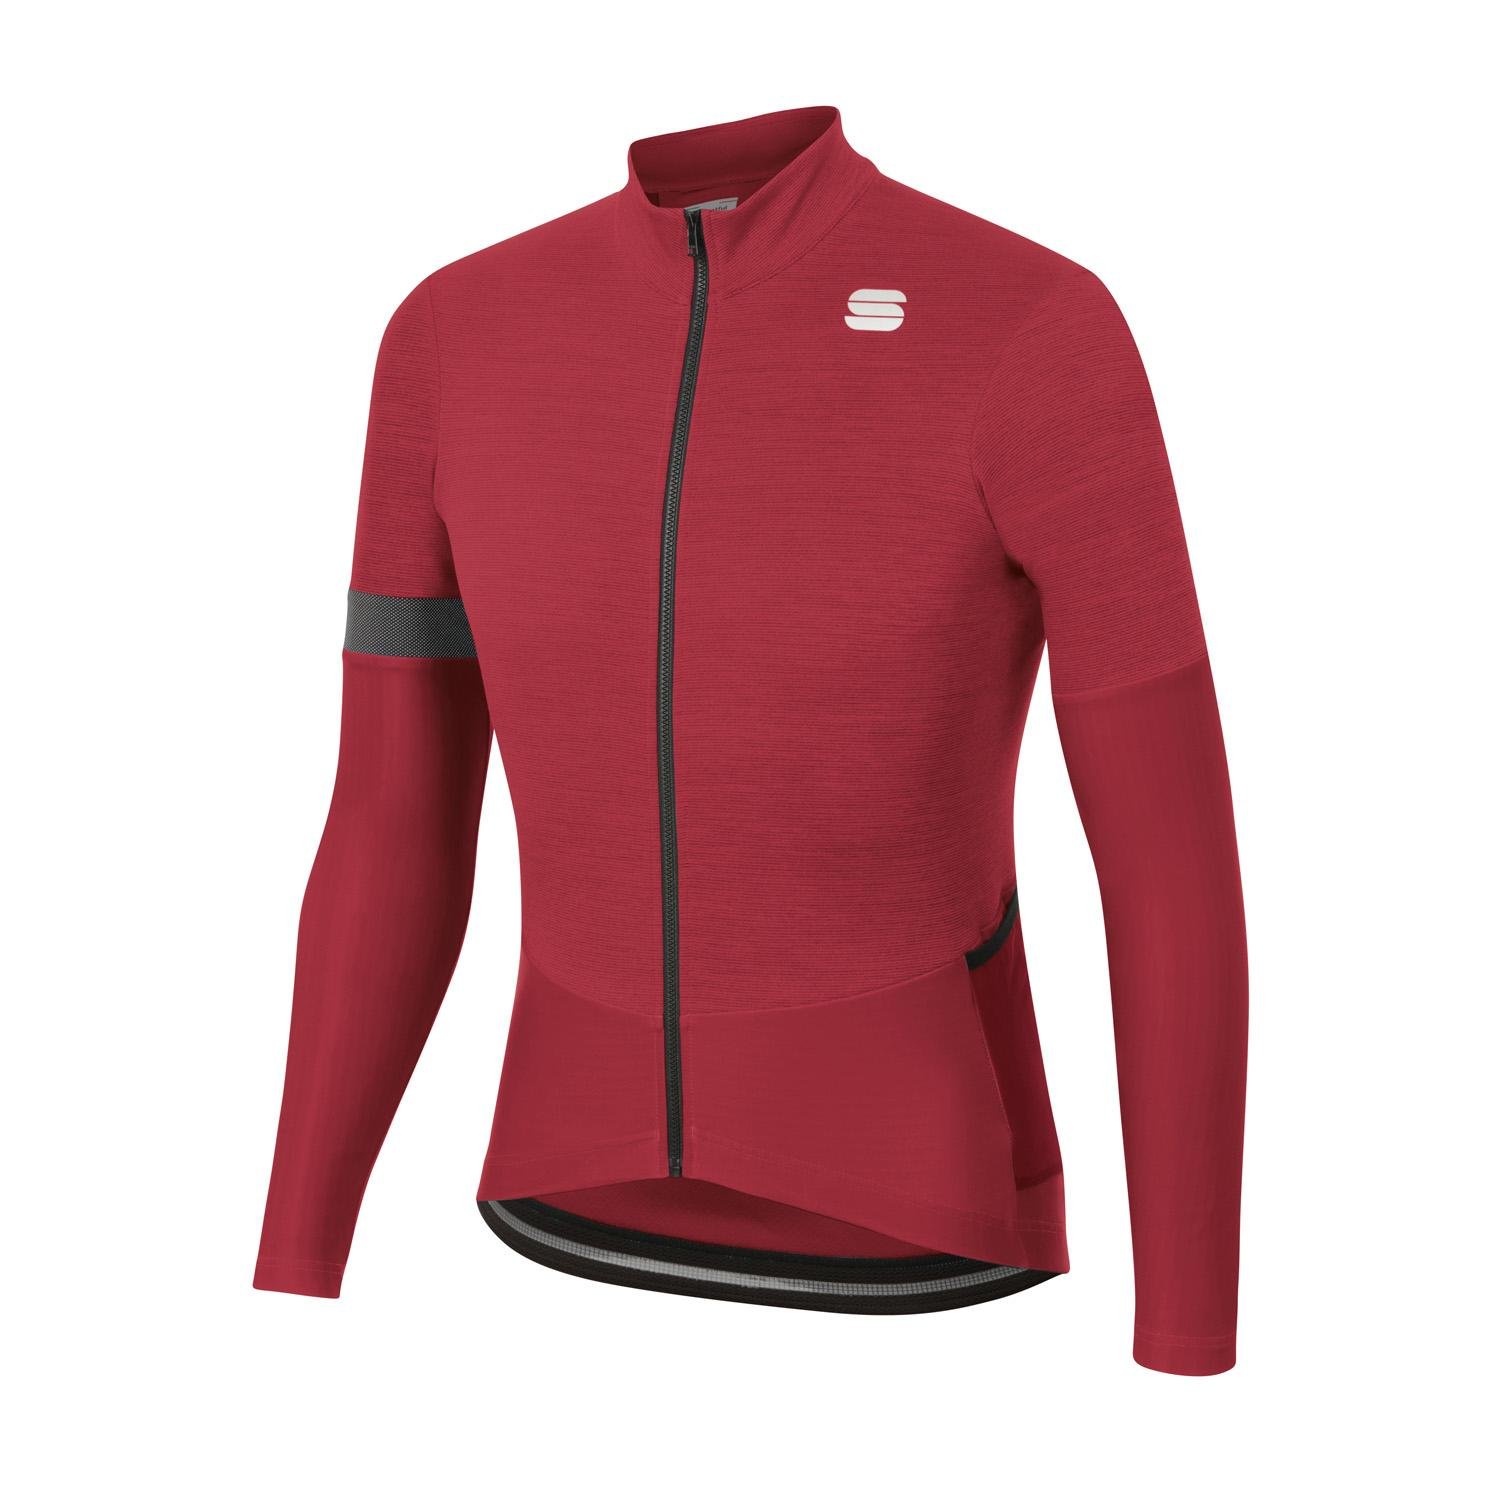 Sportful Fietsshirt lange mouwen Heren Rood - SUPERGIARA THERMAL JERSEY RED RUMBA